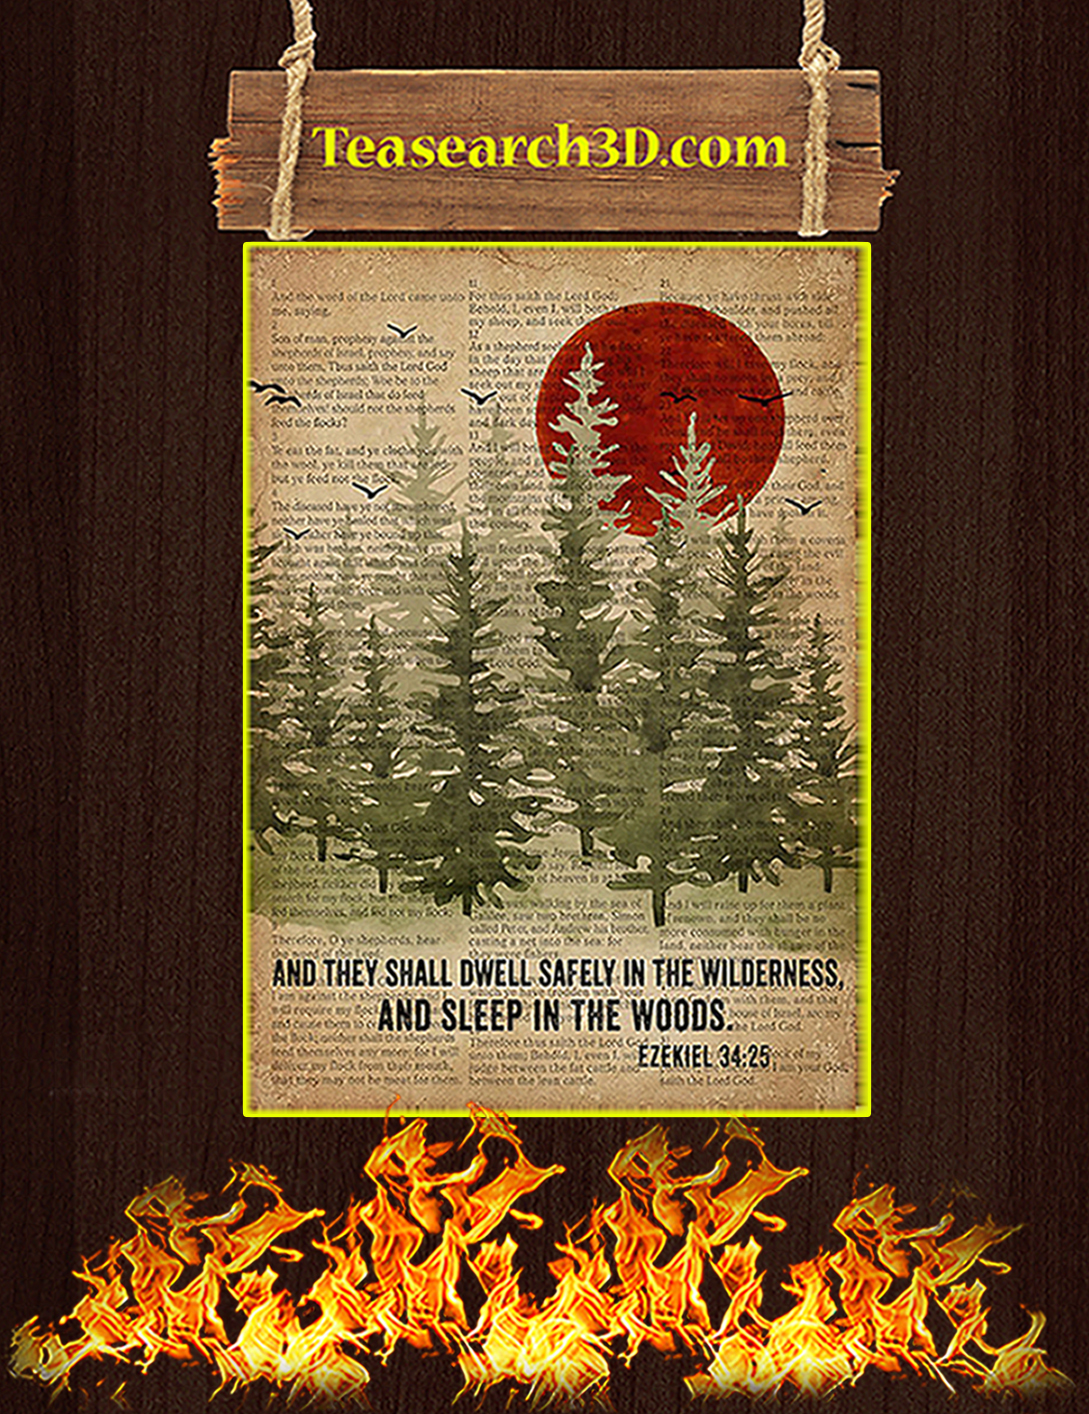 And they shall dwell safety in the wilderness and sleep in the woods poster A2